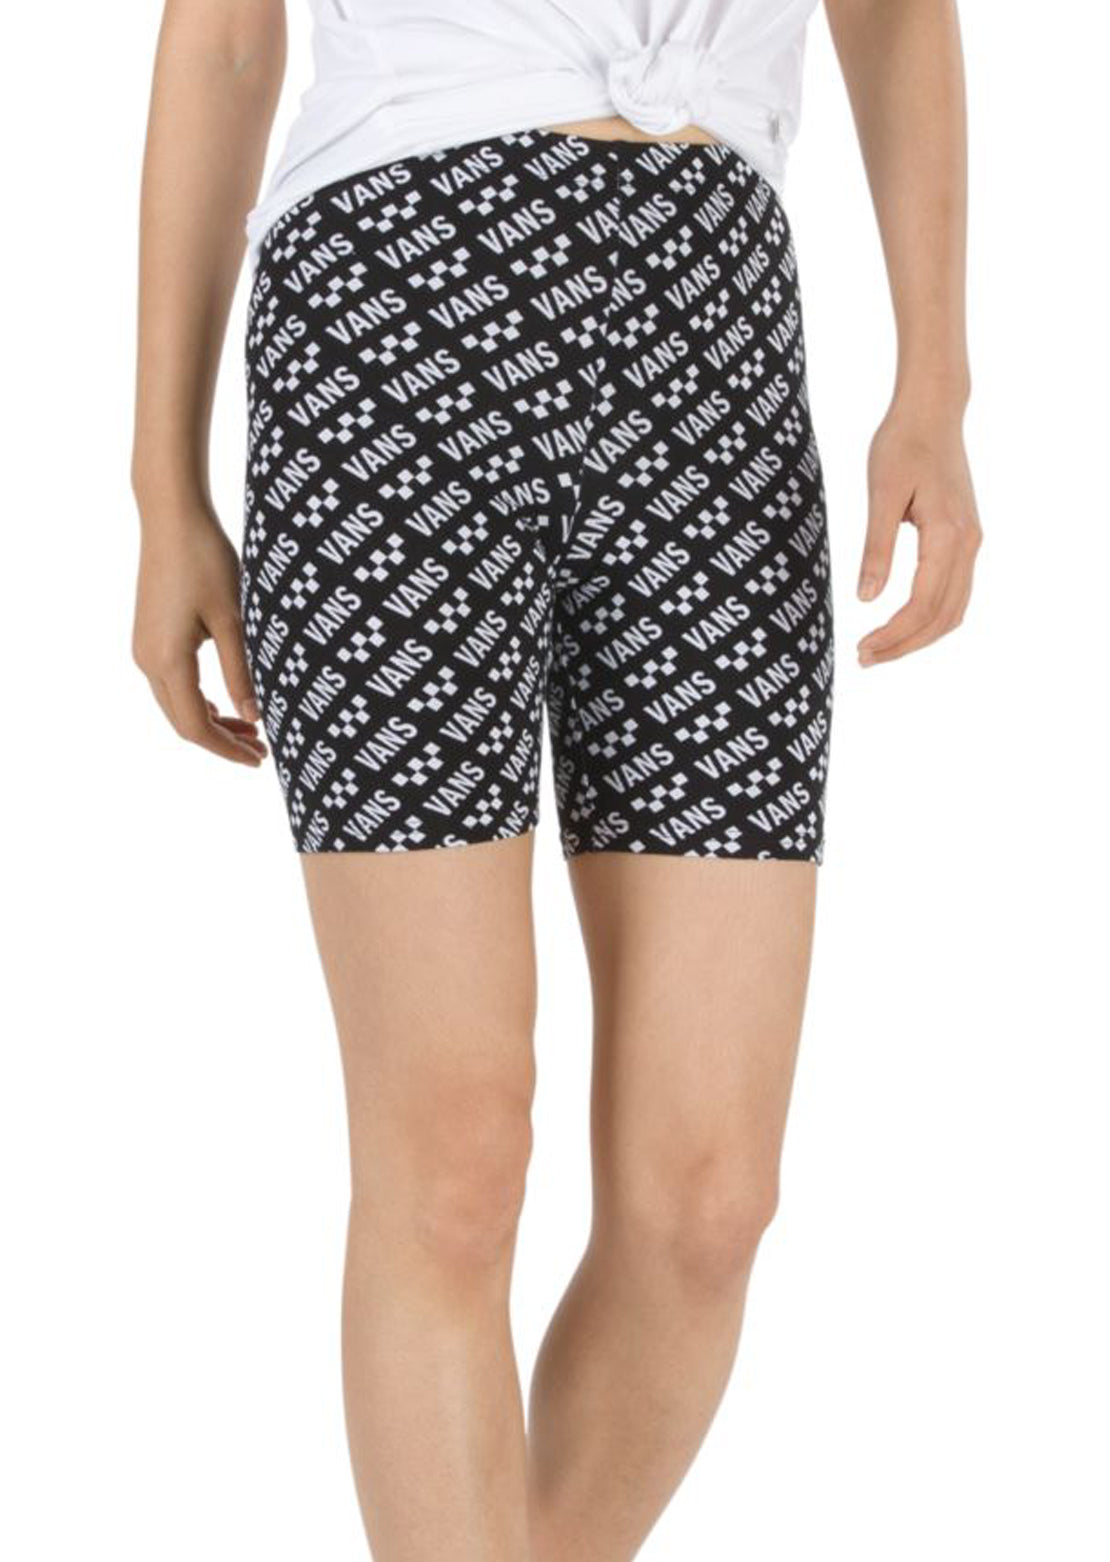 Vans Women's Brand Striper Bike Shorts Brand Striper